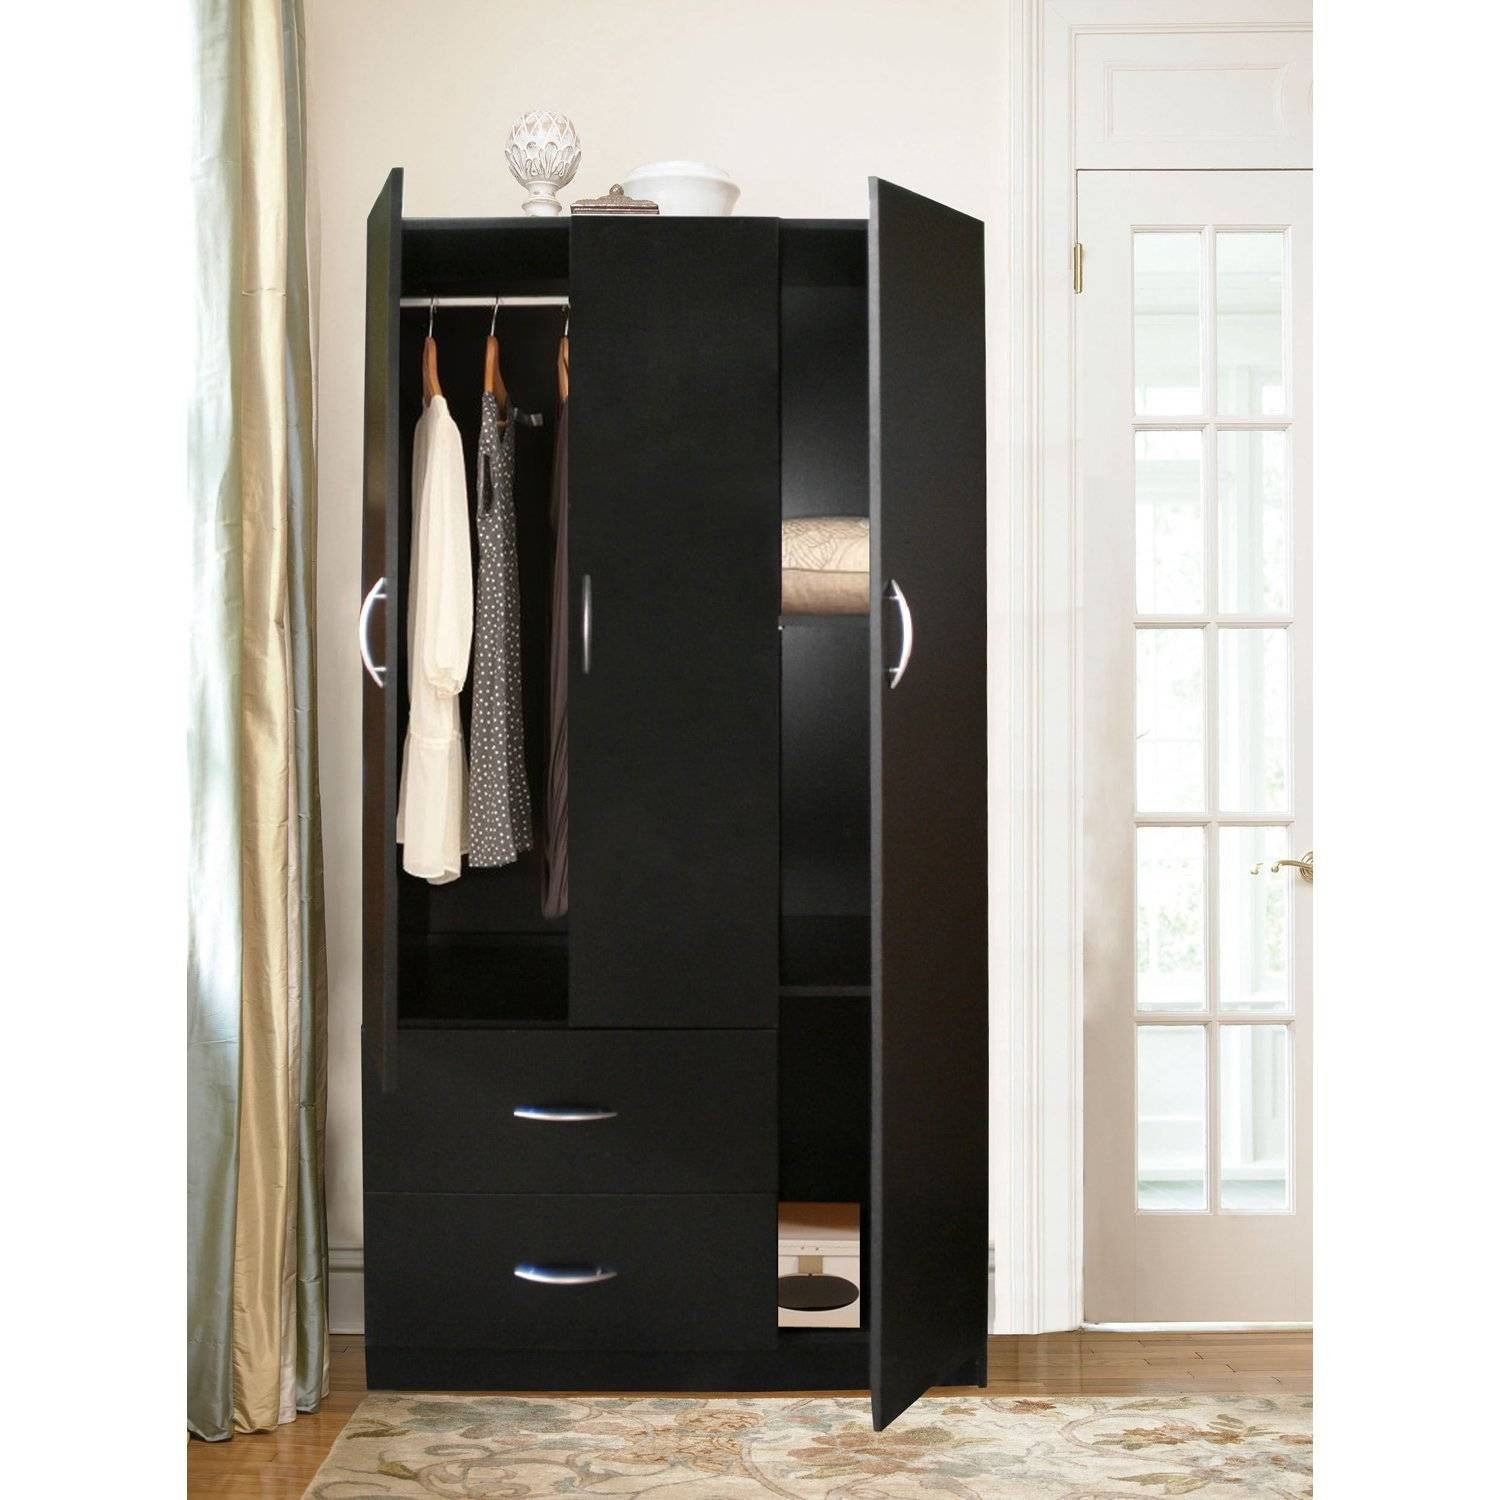 Furniture: Fancy Wardrobe Armoire For Wardrobe Organizer Idea regarding Wardrobes With Shelves And Drawers (Image 14 of 30)